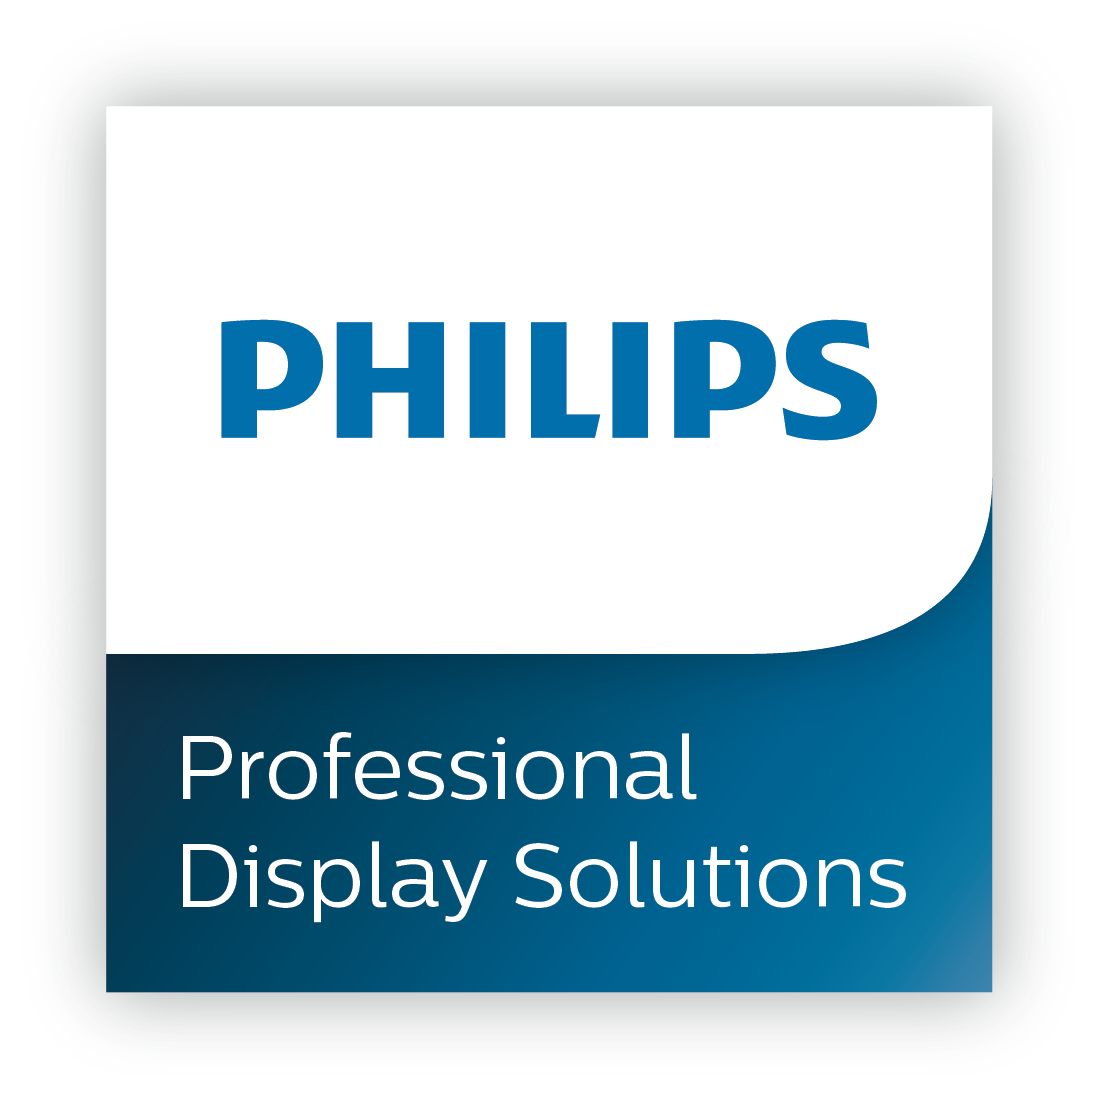 Philips Professional Display